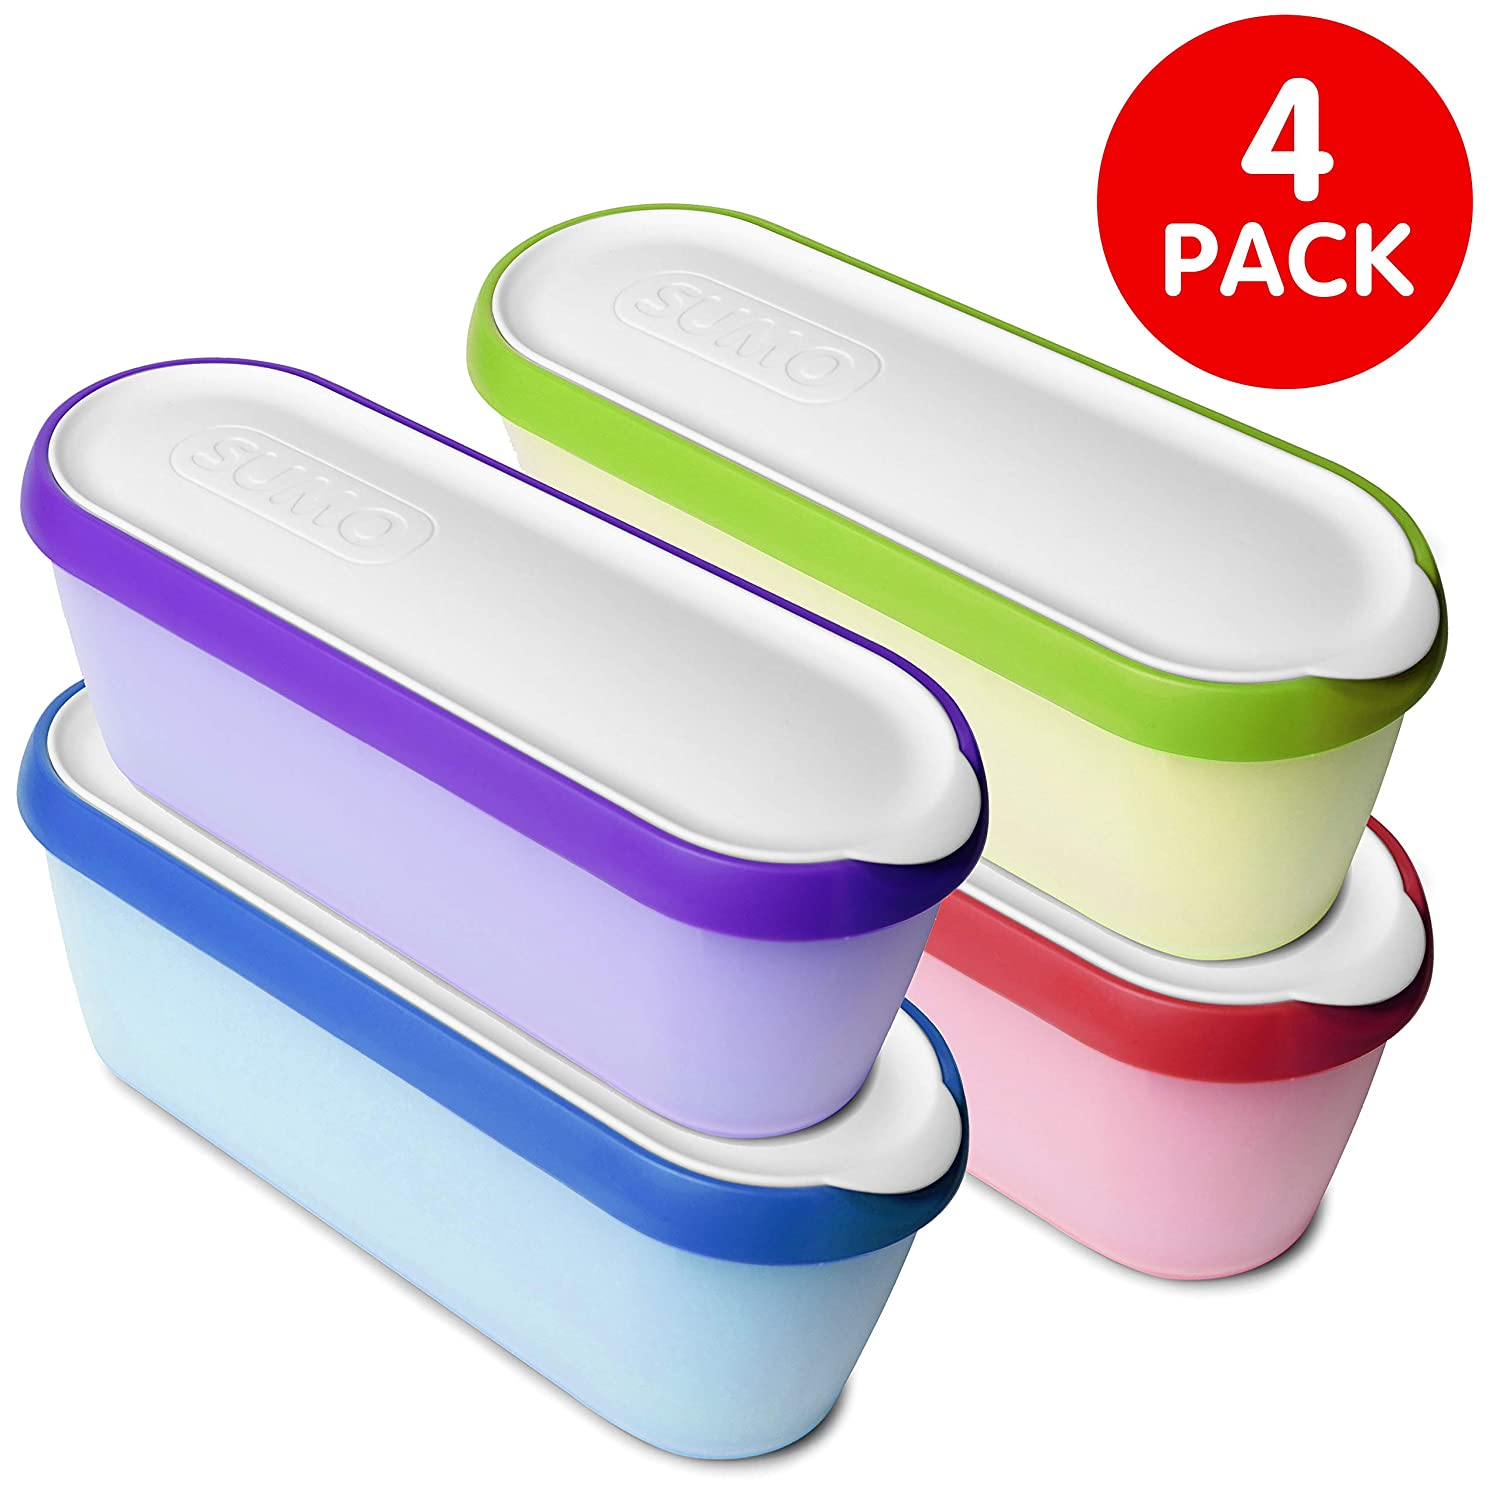 SUMO Ice Cream Containers: Insulated Ice Cream Tub for Homemade Ice-Cream, Gelato or Sorbet - Dishwasher Safe - 1.5 Quart Capacity [Rainbow, 4-Pack]